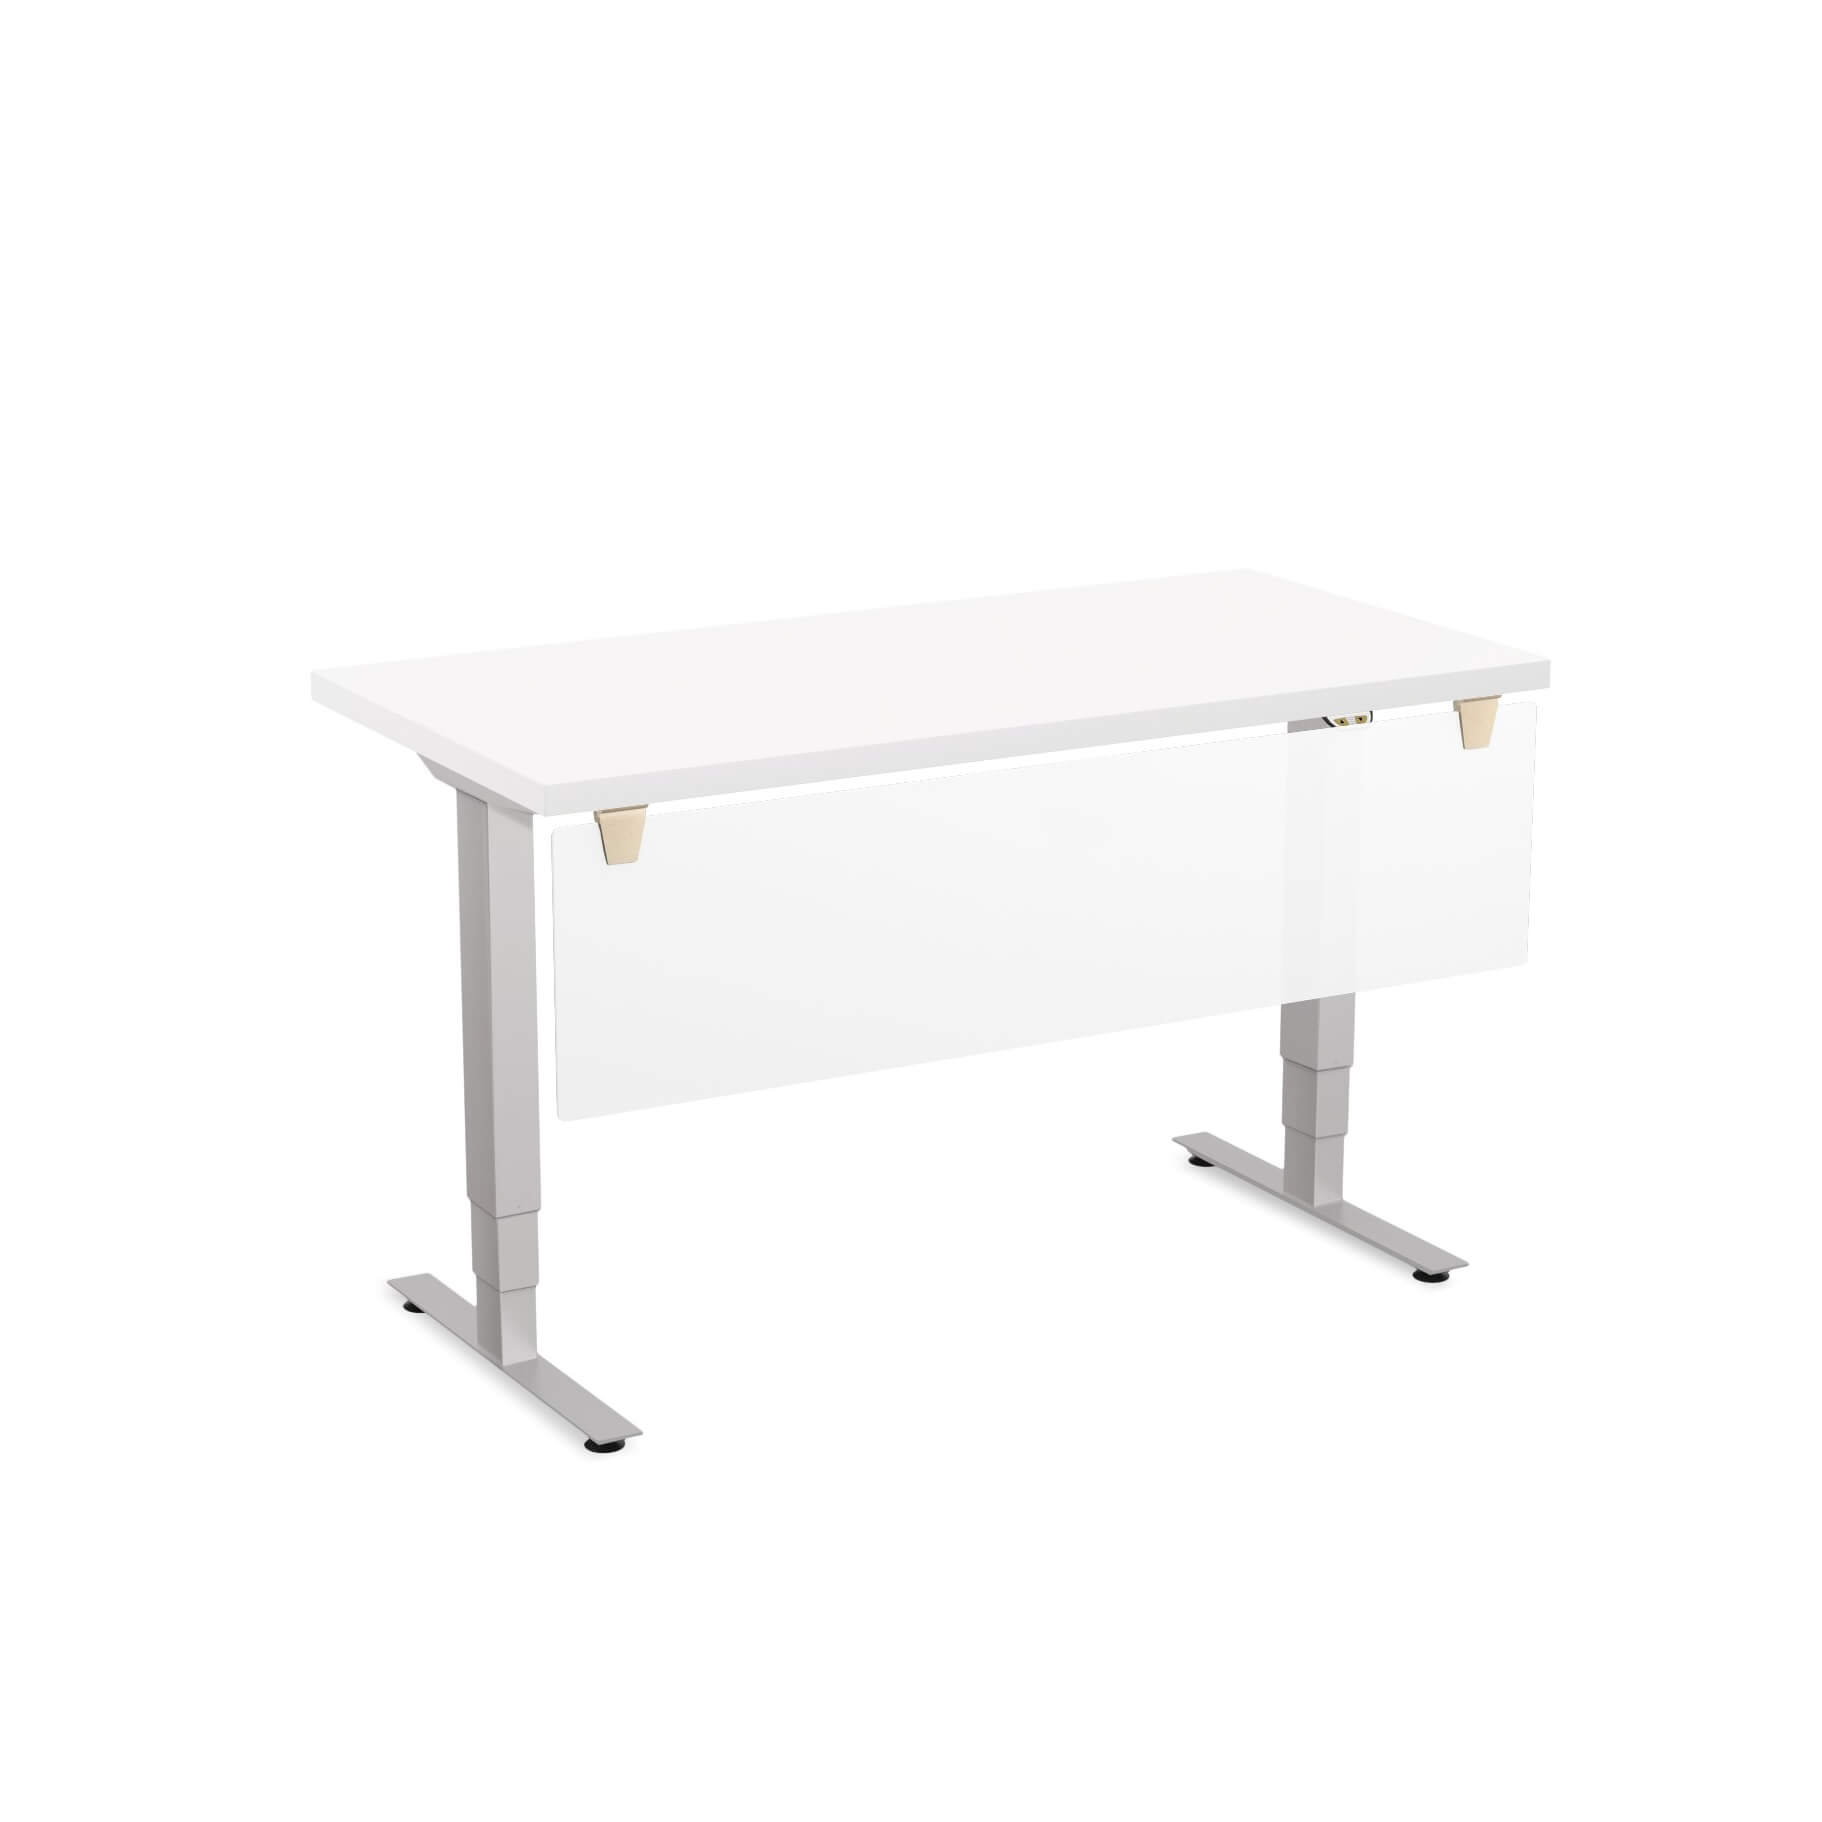 sit-stand-desk-height-adjustable-table-1-2.jpg